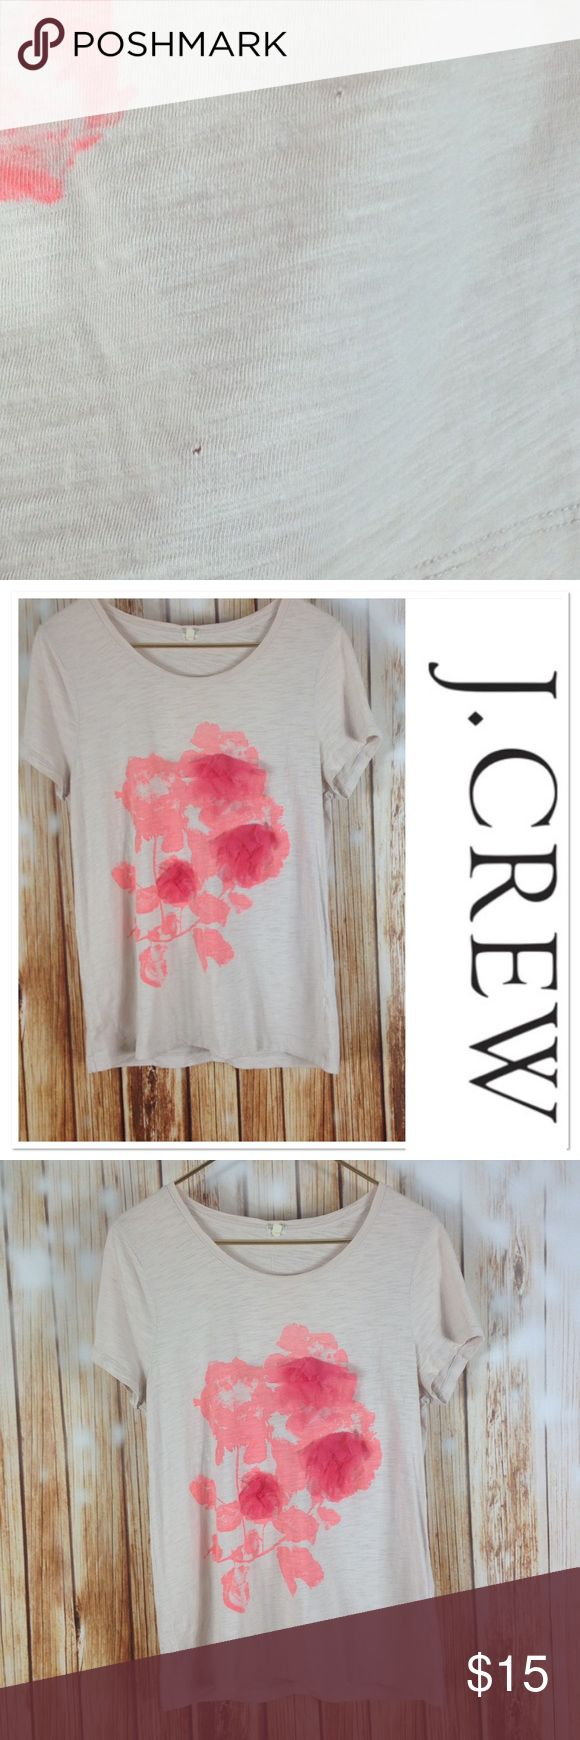 🌸Floral Tee🌸 This tee from J. Crew is super adorable! The fun ruffles on the front compliment the abstract pink design! It is a burnout material, meaning that in some parts it is a little see through. There are two holes in the shirt on the front but they are barely noticeable, especially with a tank top underneath! Have any questions? I bet I have answers so feel free to ask! Check out my closet so you can bundle and save! J. Crew Tops Tees - Short Sleeve